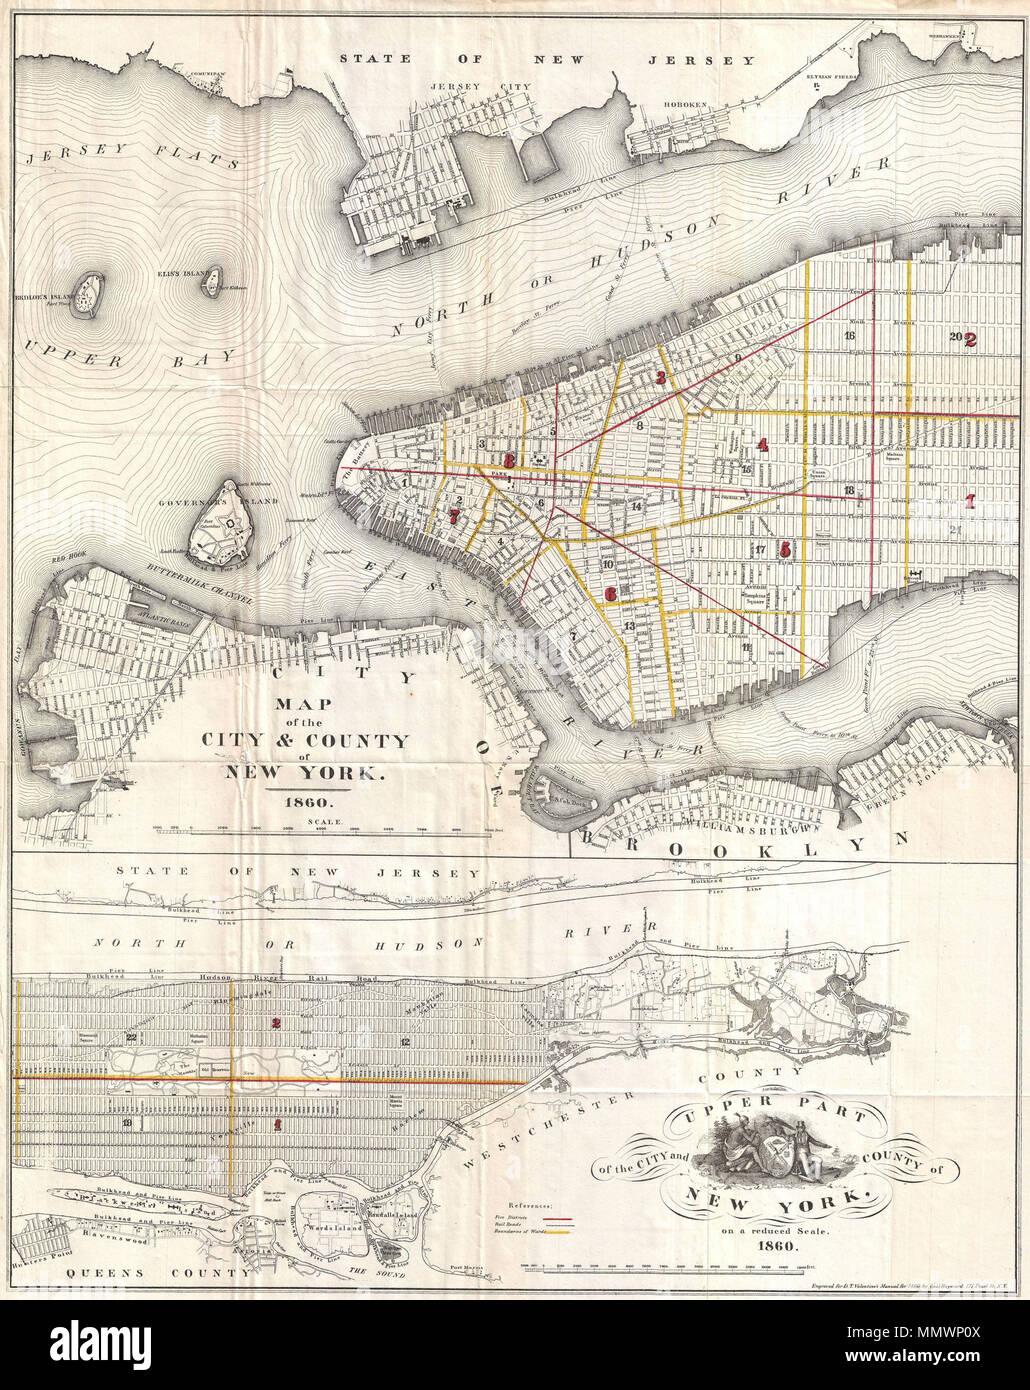 Nyc Map It.English An Attractive Map Of New York City Issued In 1860 For